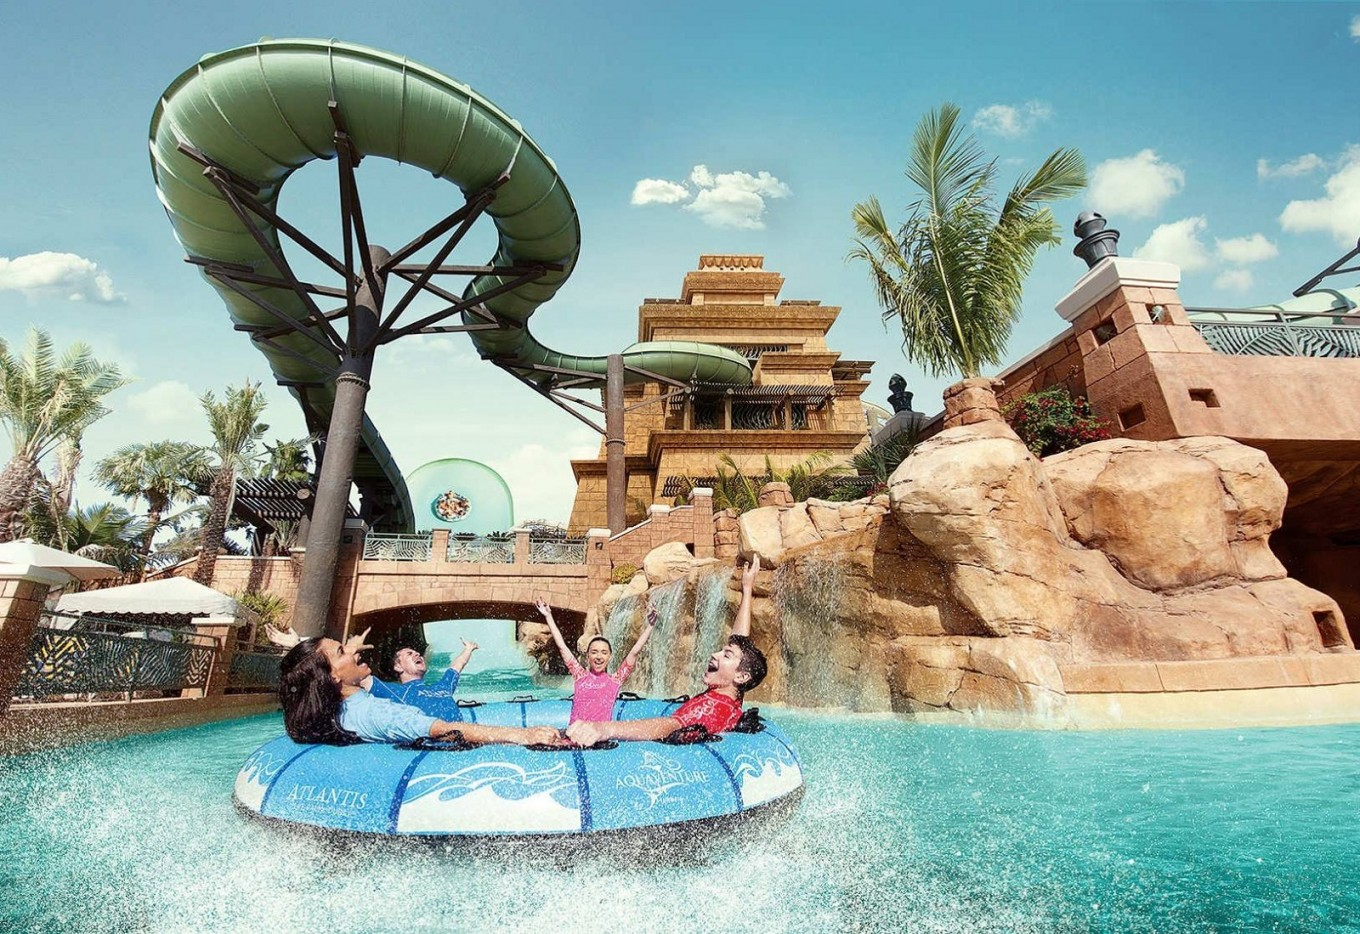 Sanya is a renowned tropical coastal paradise for vacation and a key international gateway of the island